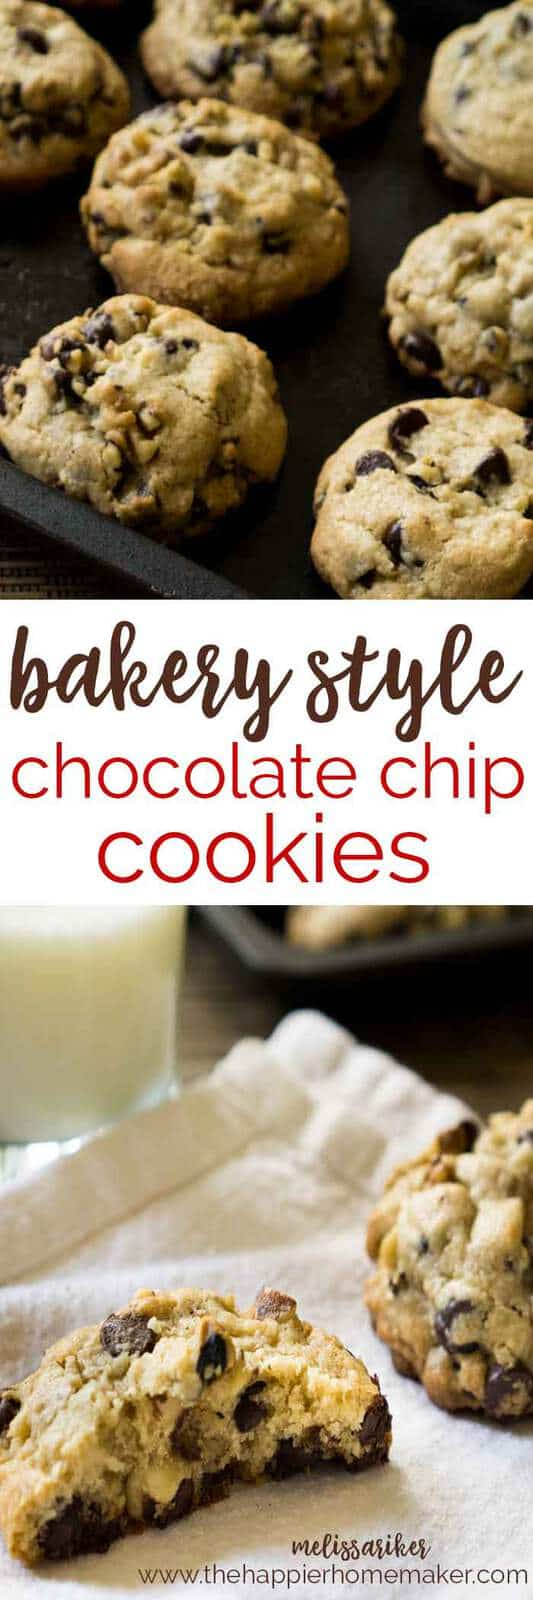 These cookies are amazing!! They are huge, filled with chocolate chips and walnuts, and just like the cookies at my bakery!